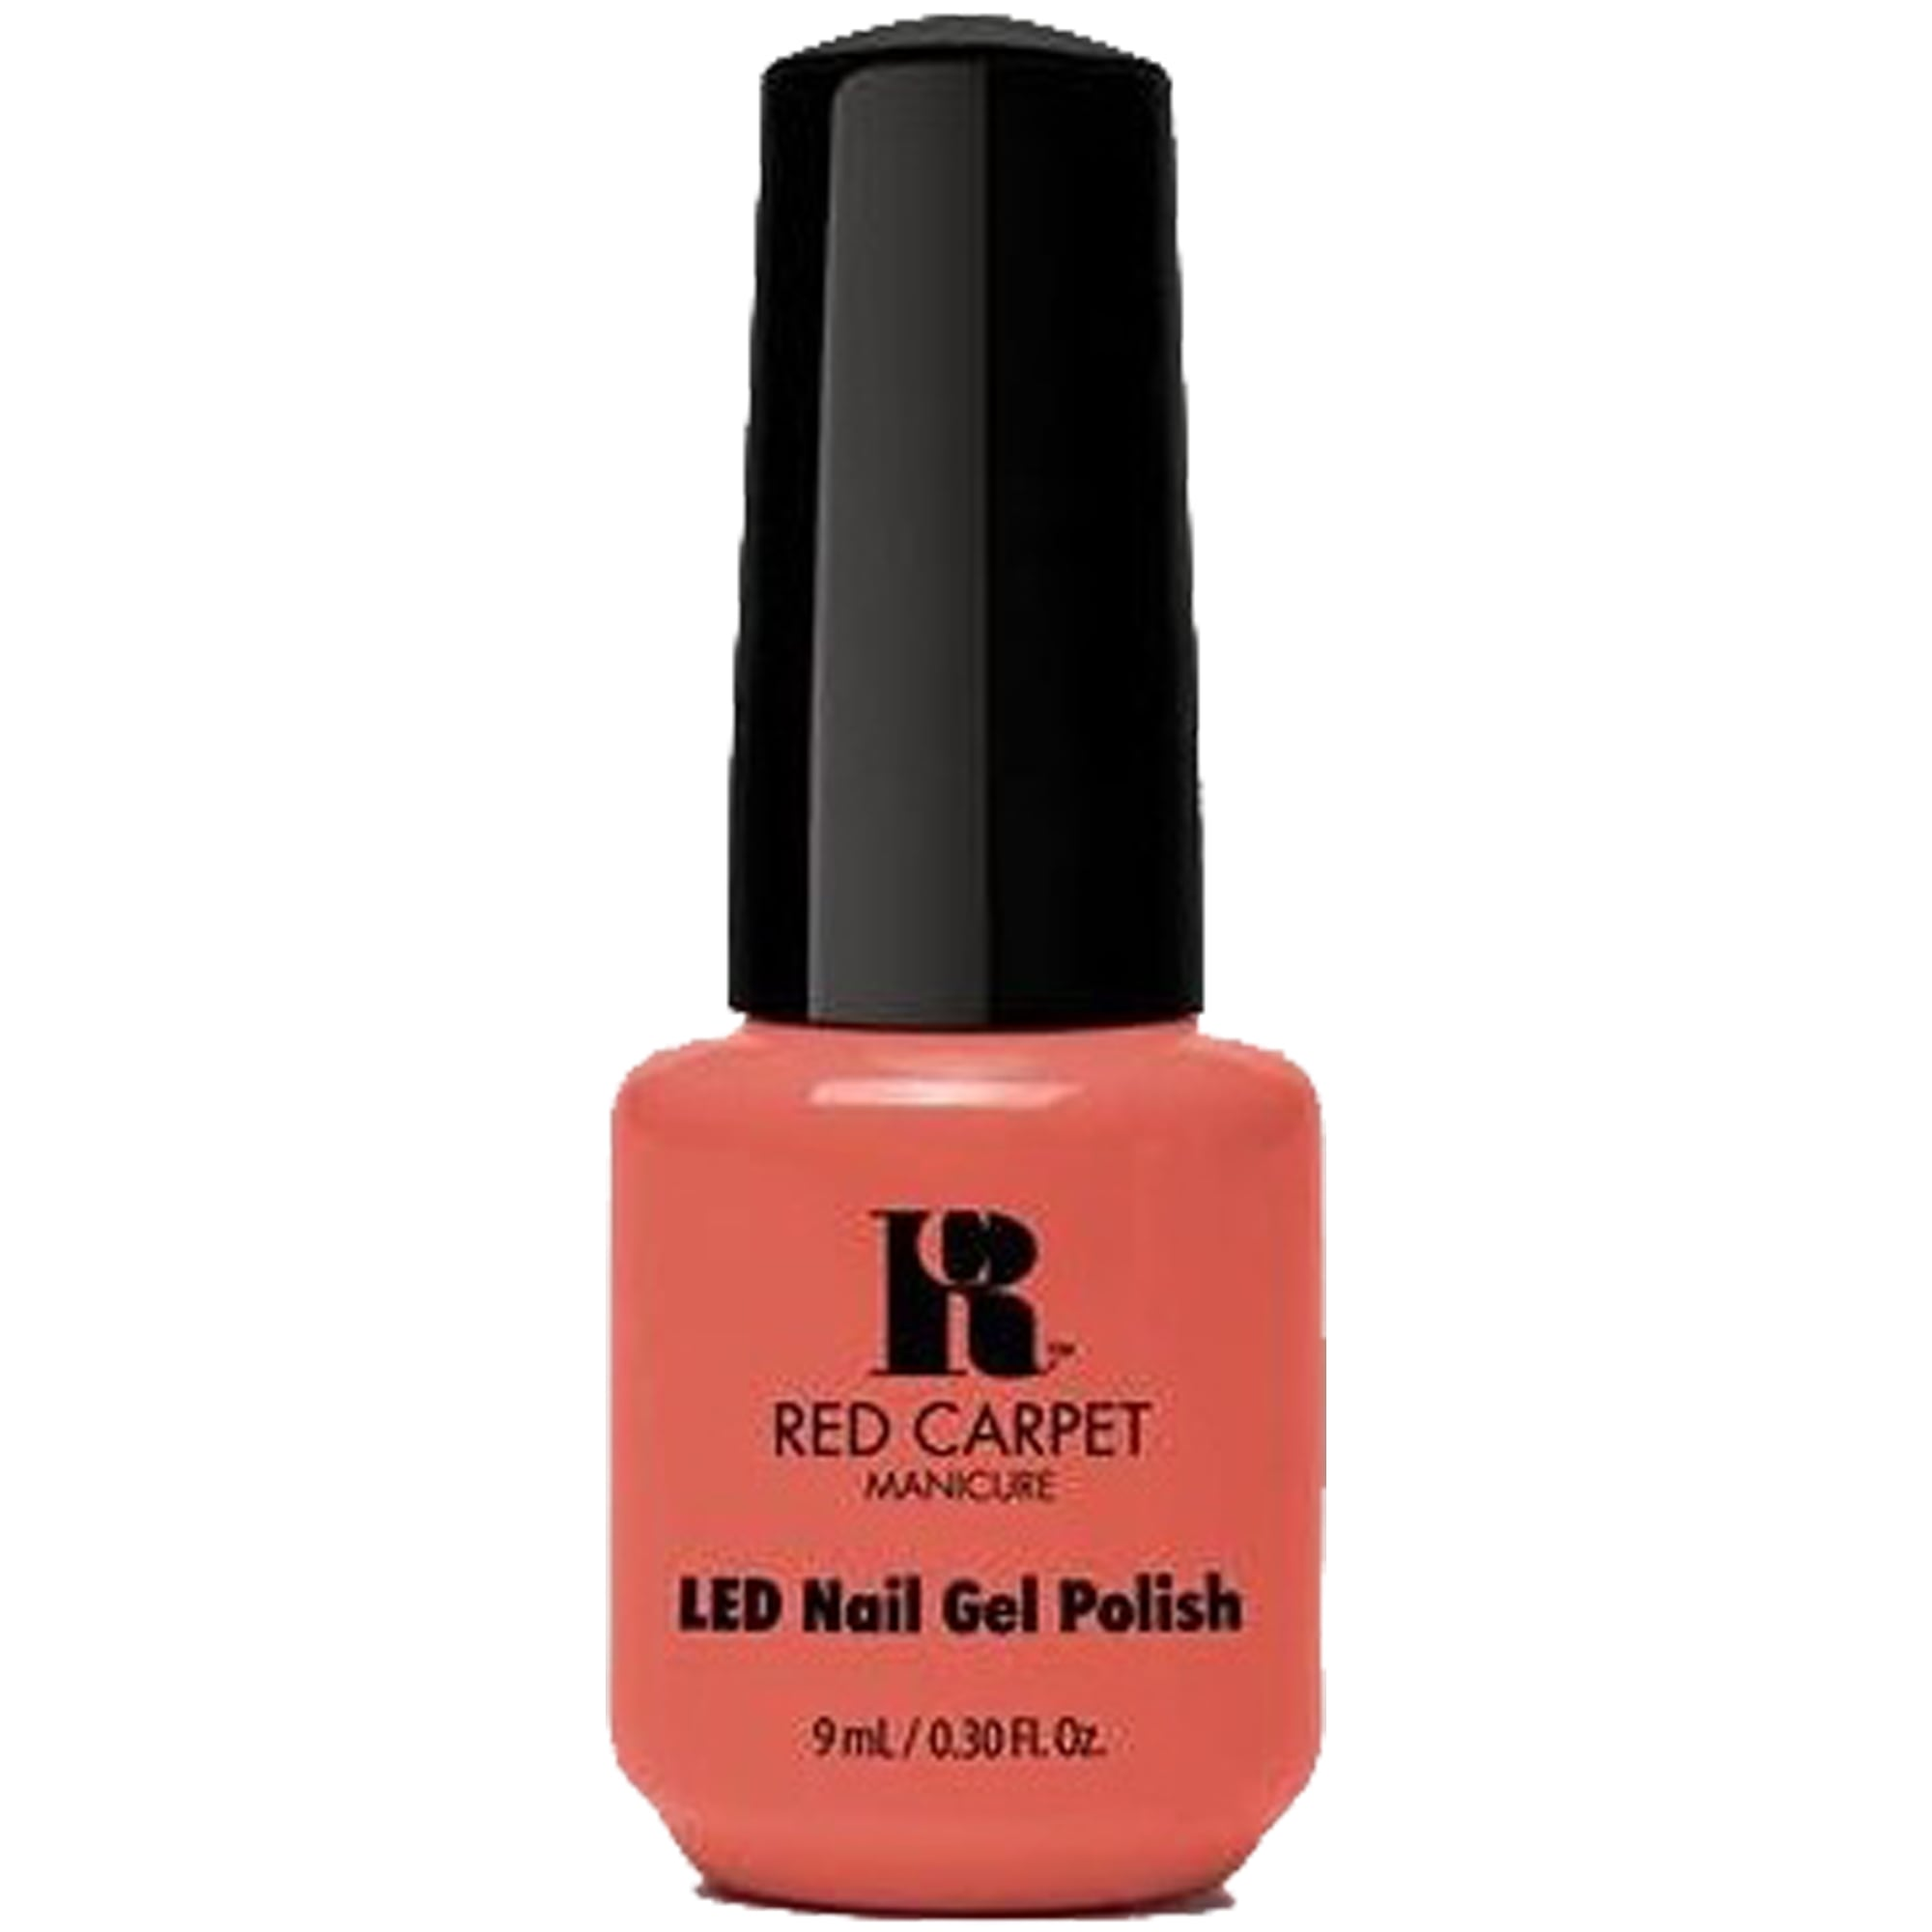 Red Carpet LED Gel Nail Polish - Coral Wishes 9ml | Quality Nails